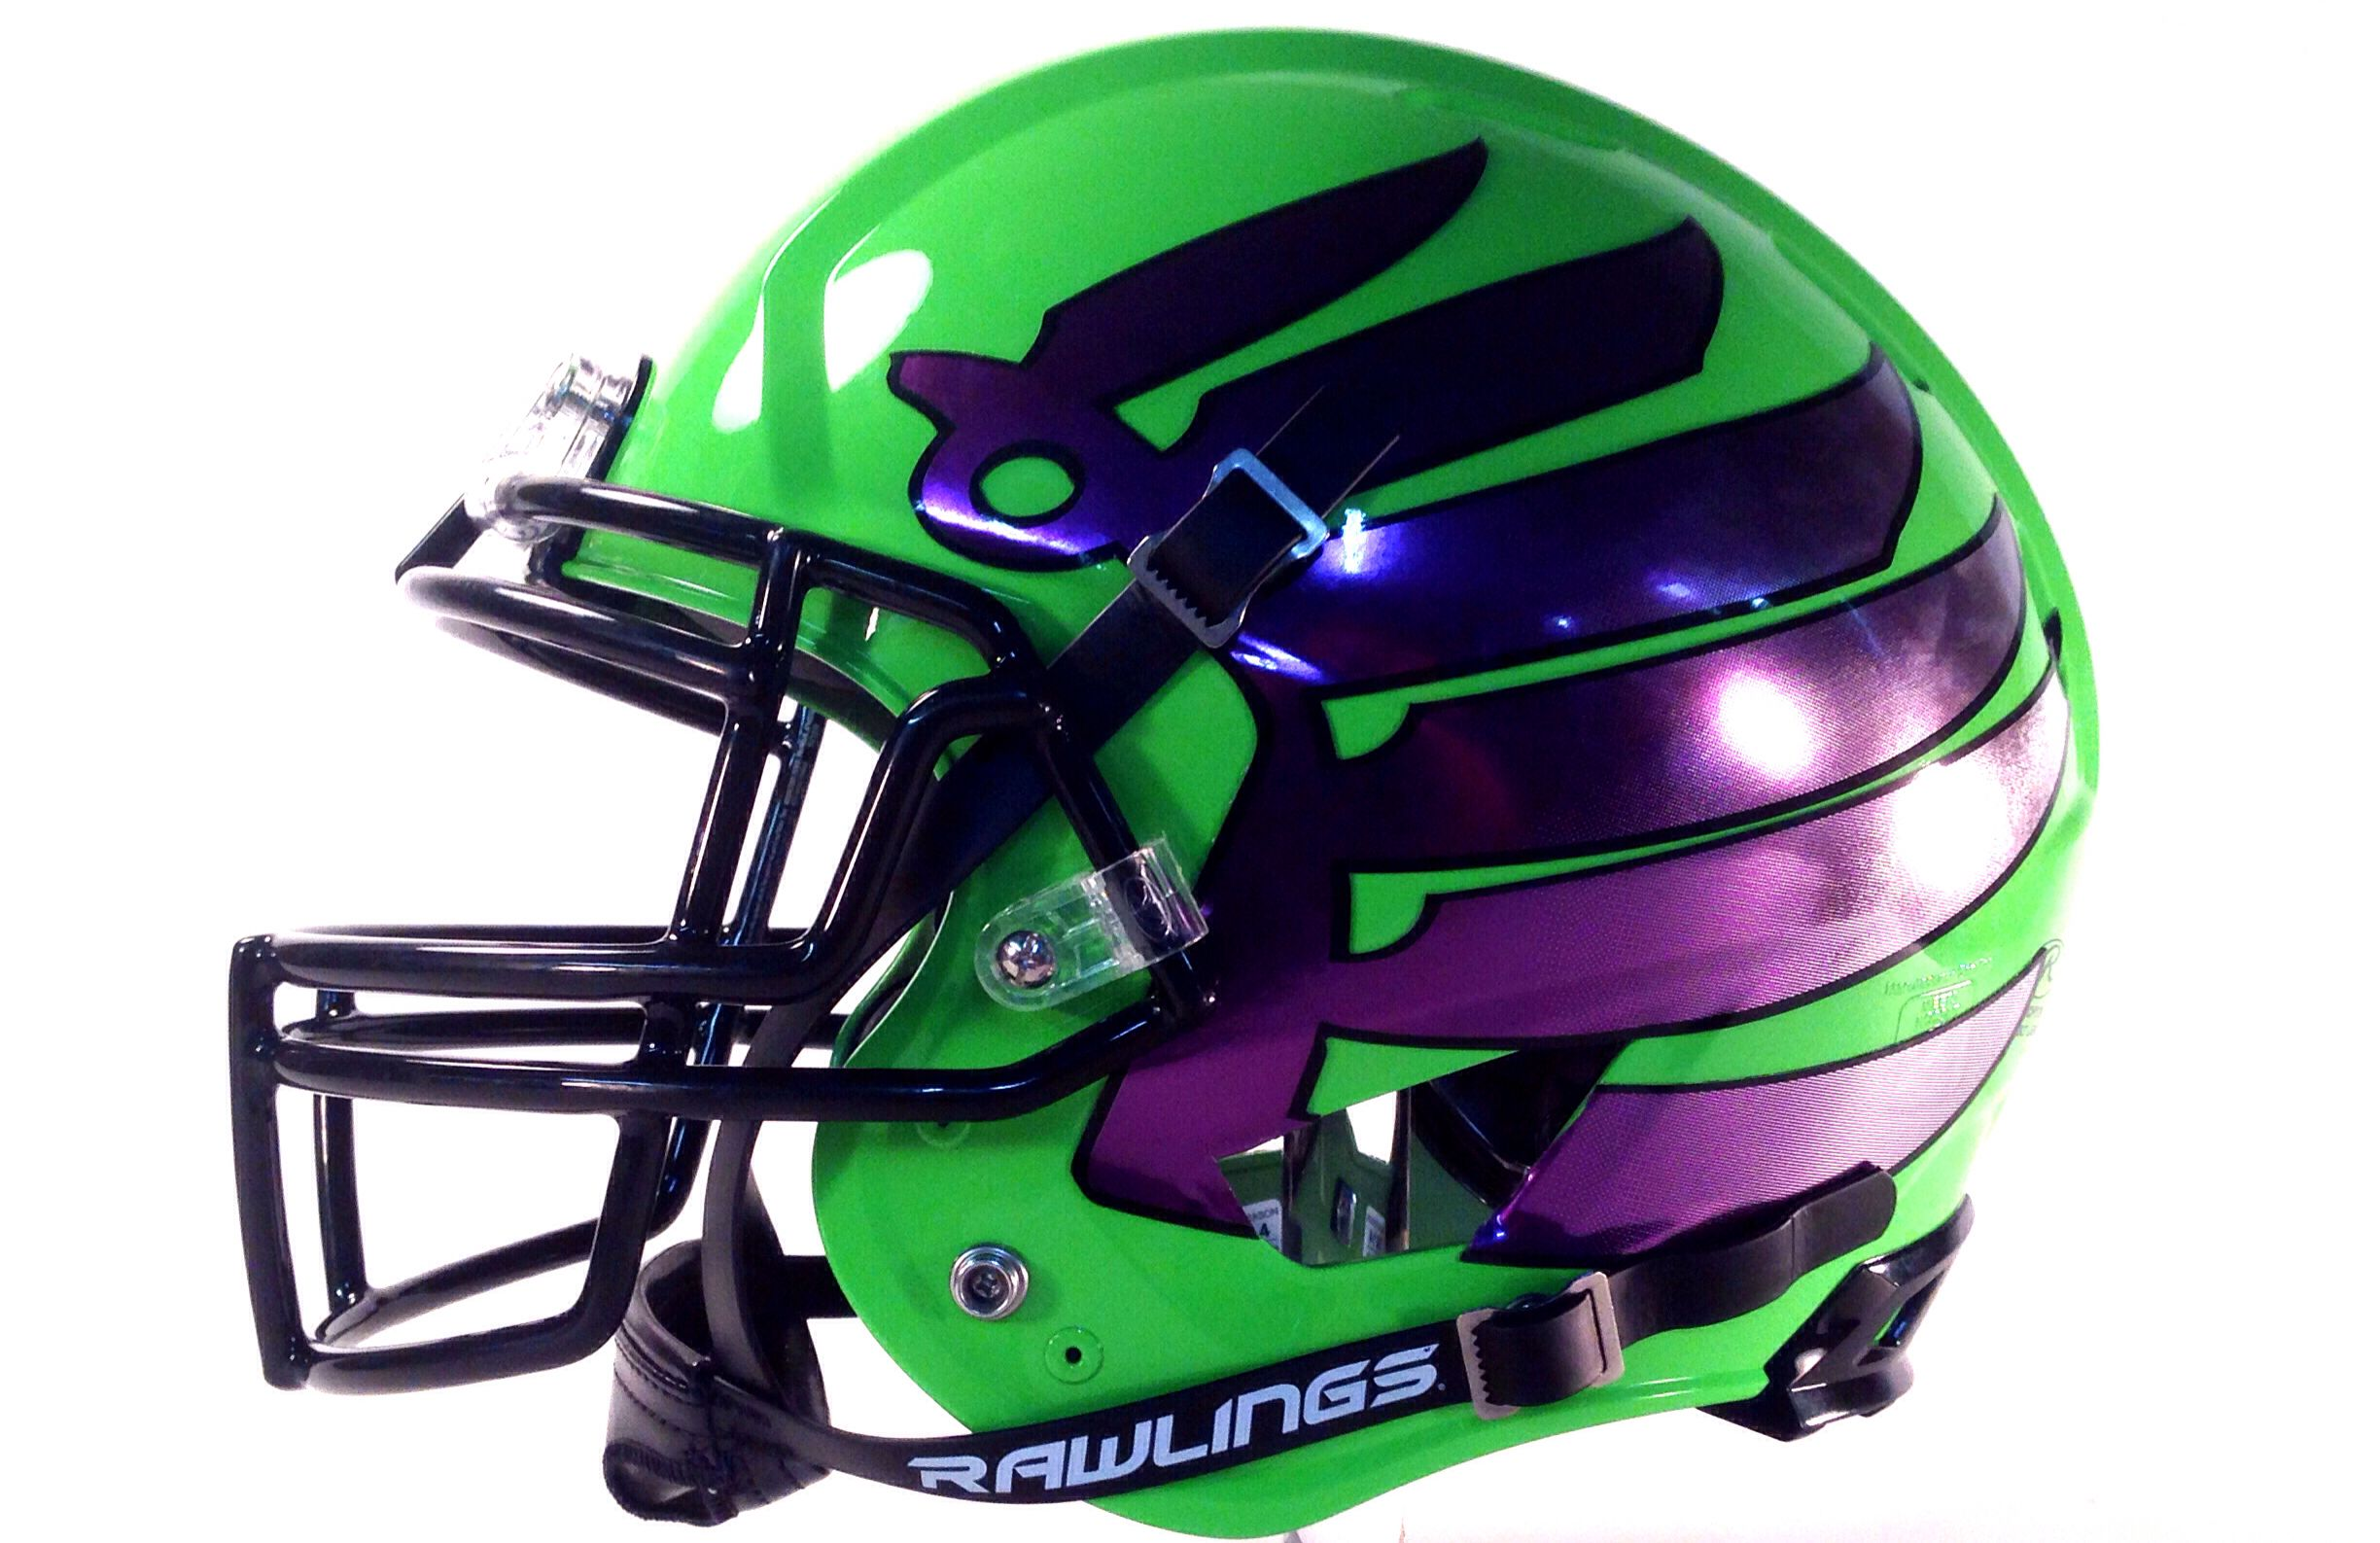 6ce85f5c7 Finally had time to put football helmet decals on our new Lime Green  Rawlings Tachyon football helmet. The wings displayed are in a Purple  Chrome that fade ...